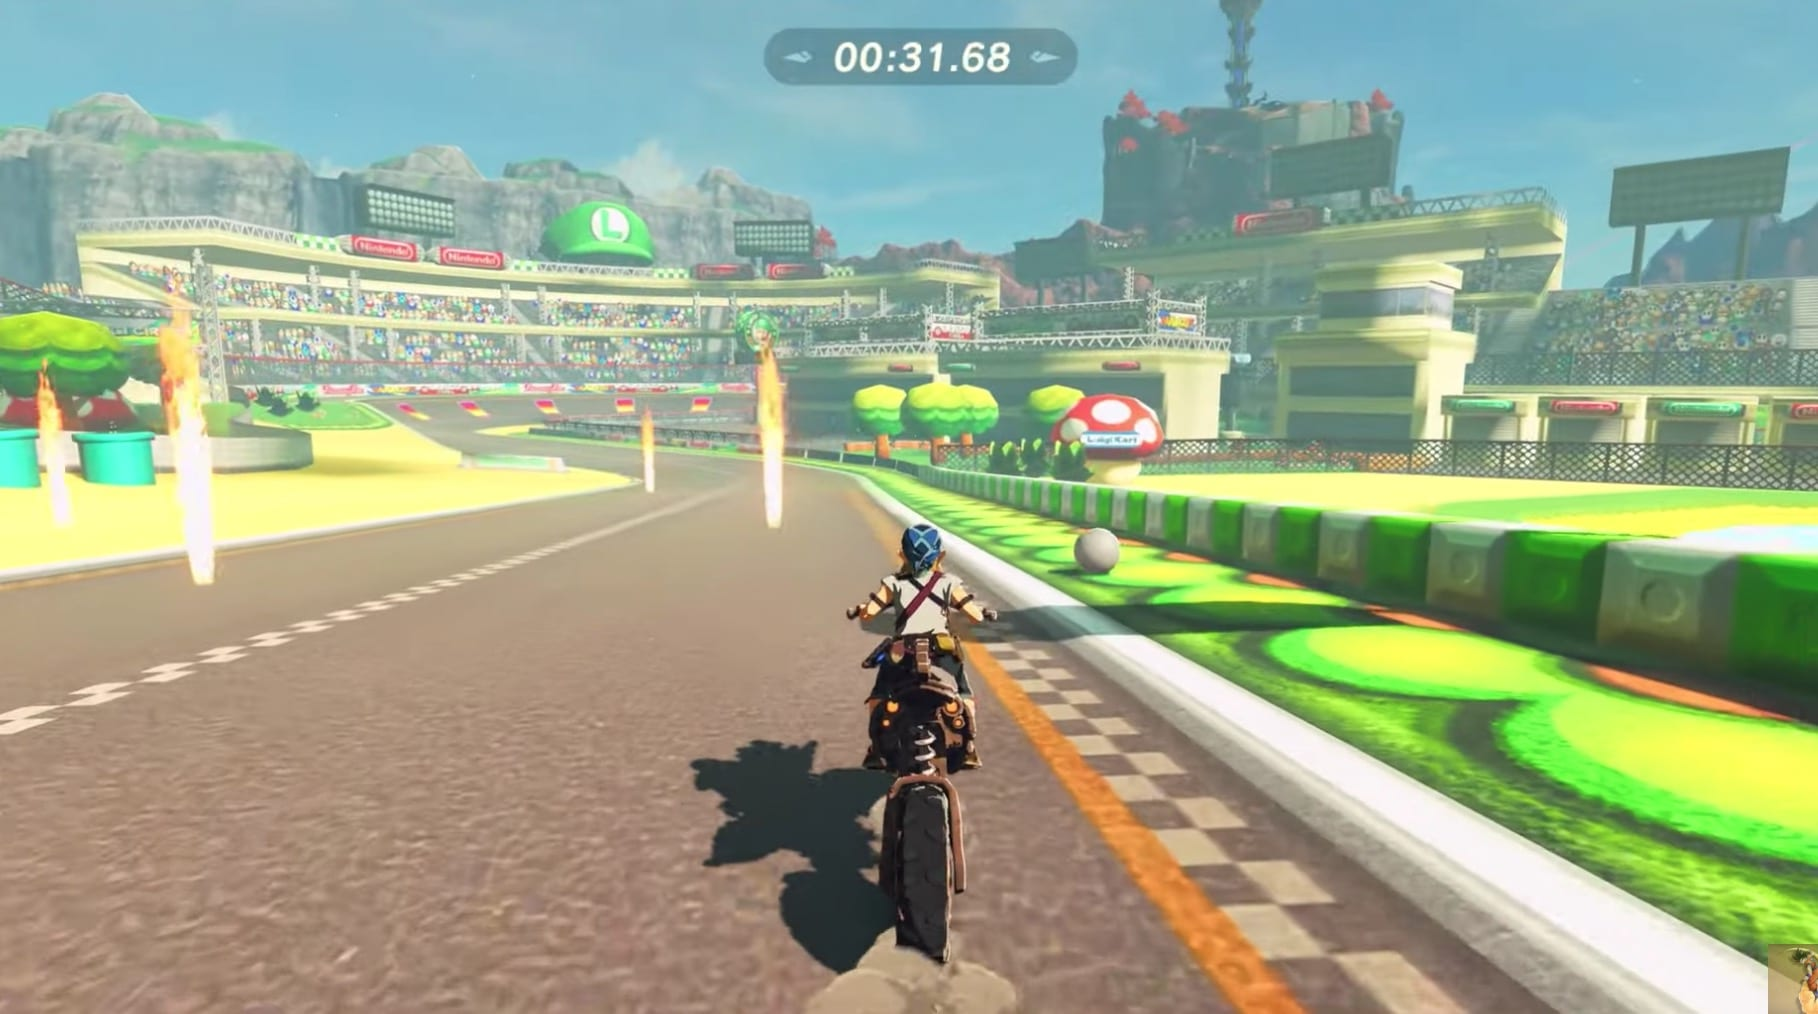 zelda breath of the wild mod, mario kart, luigi